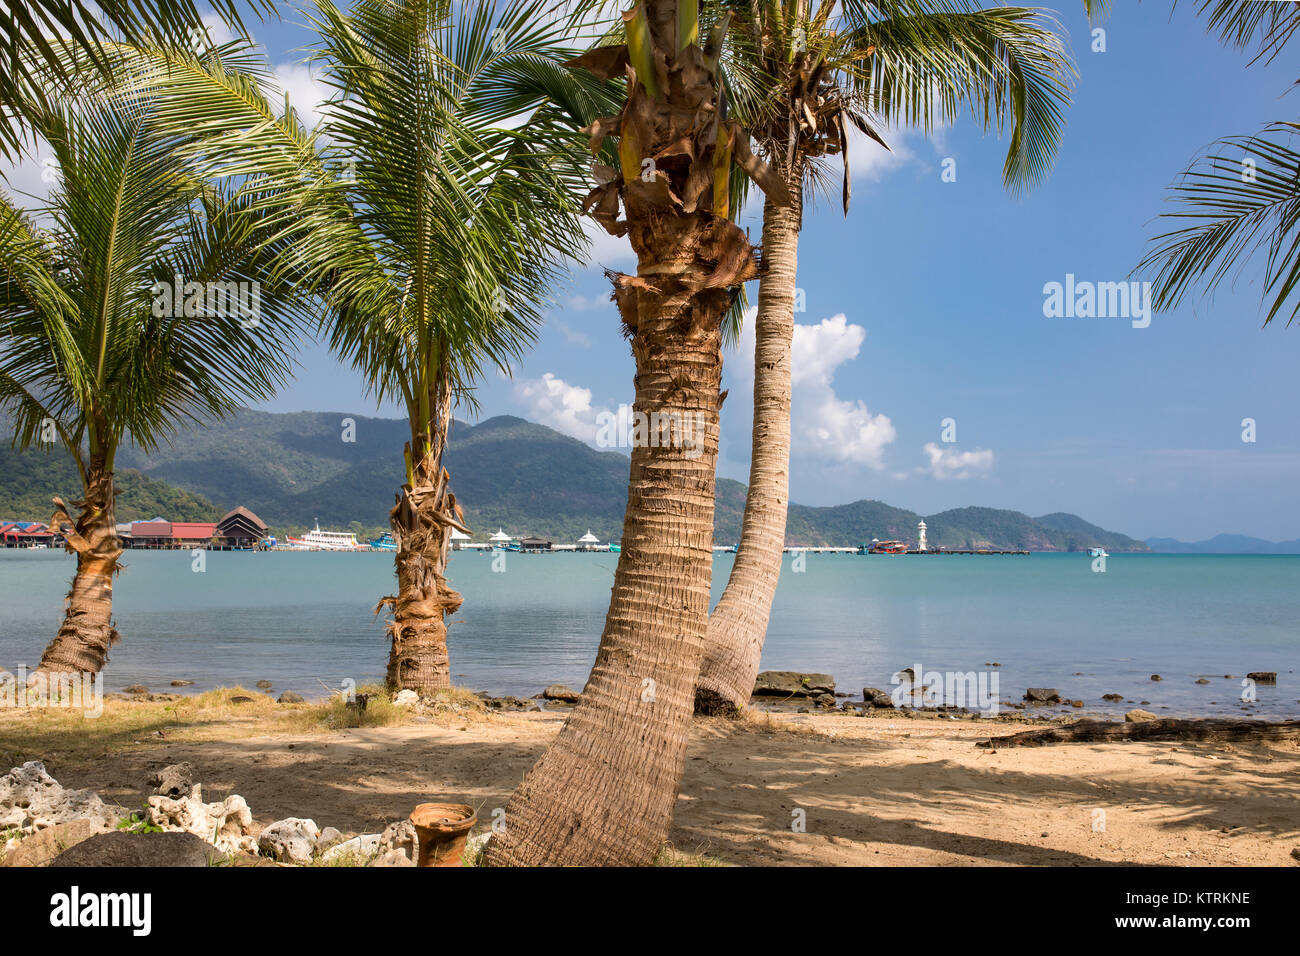 Thailand, The island Koh Chang, panoramic coast view, palms and rainforest plants, hills and blue sea. Nature in Stock Photo